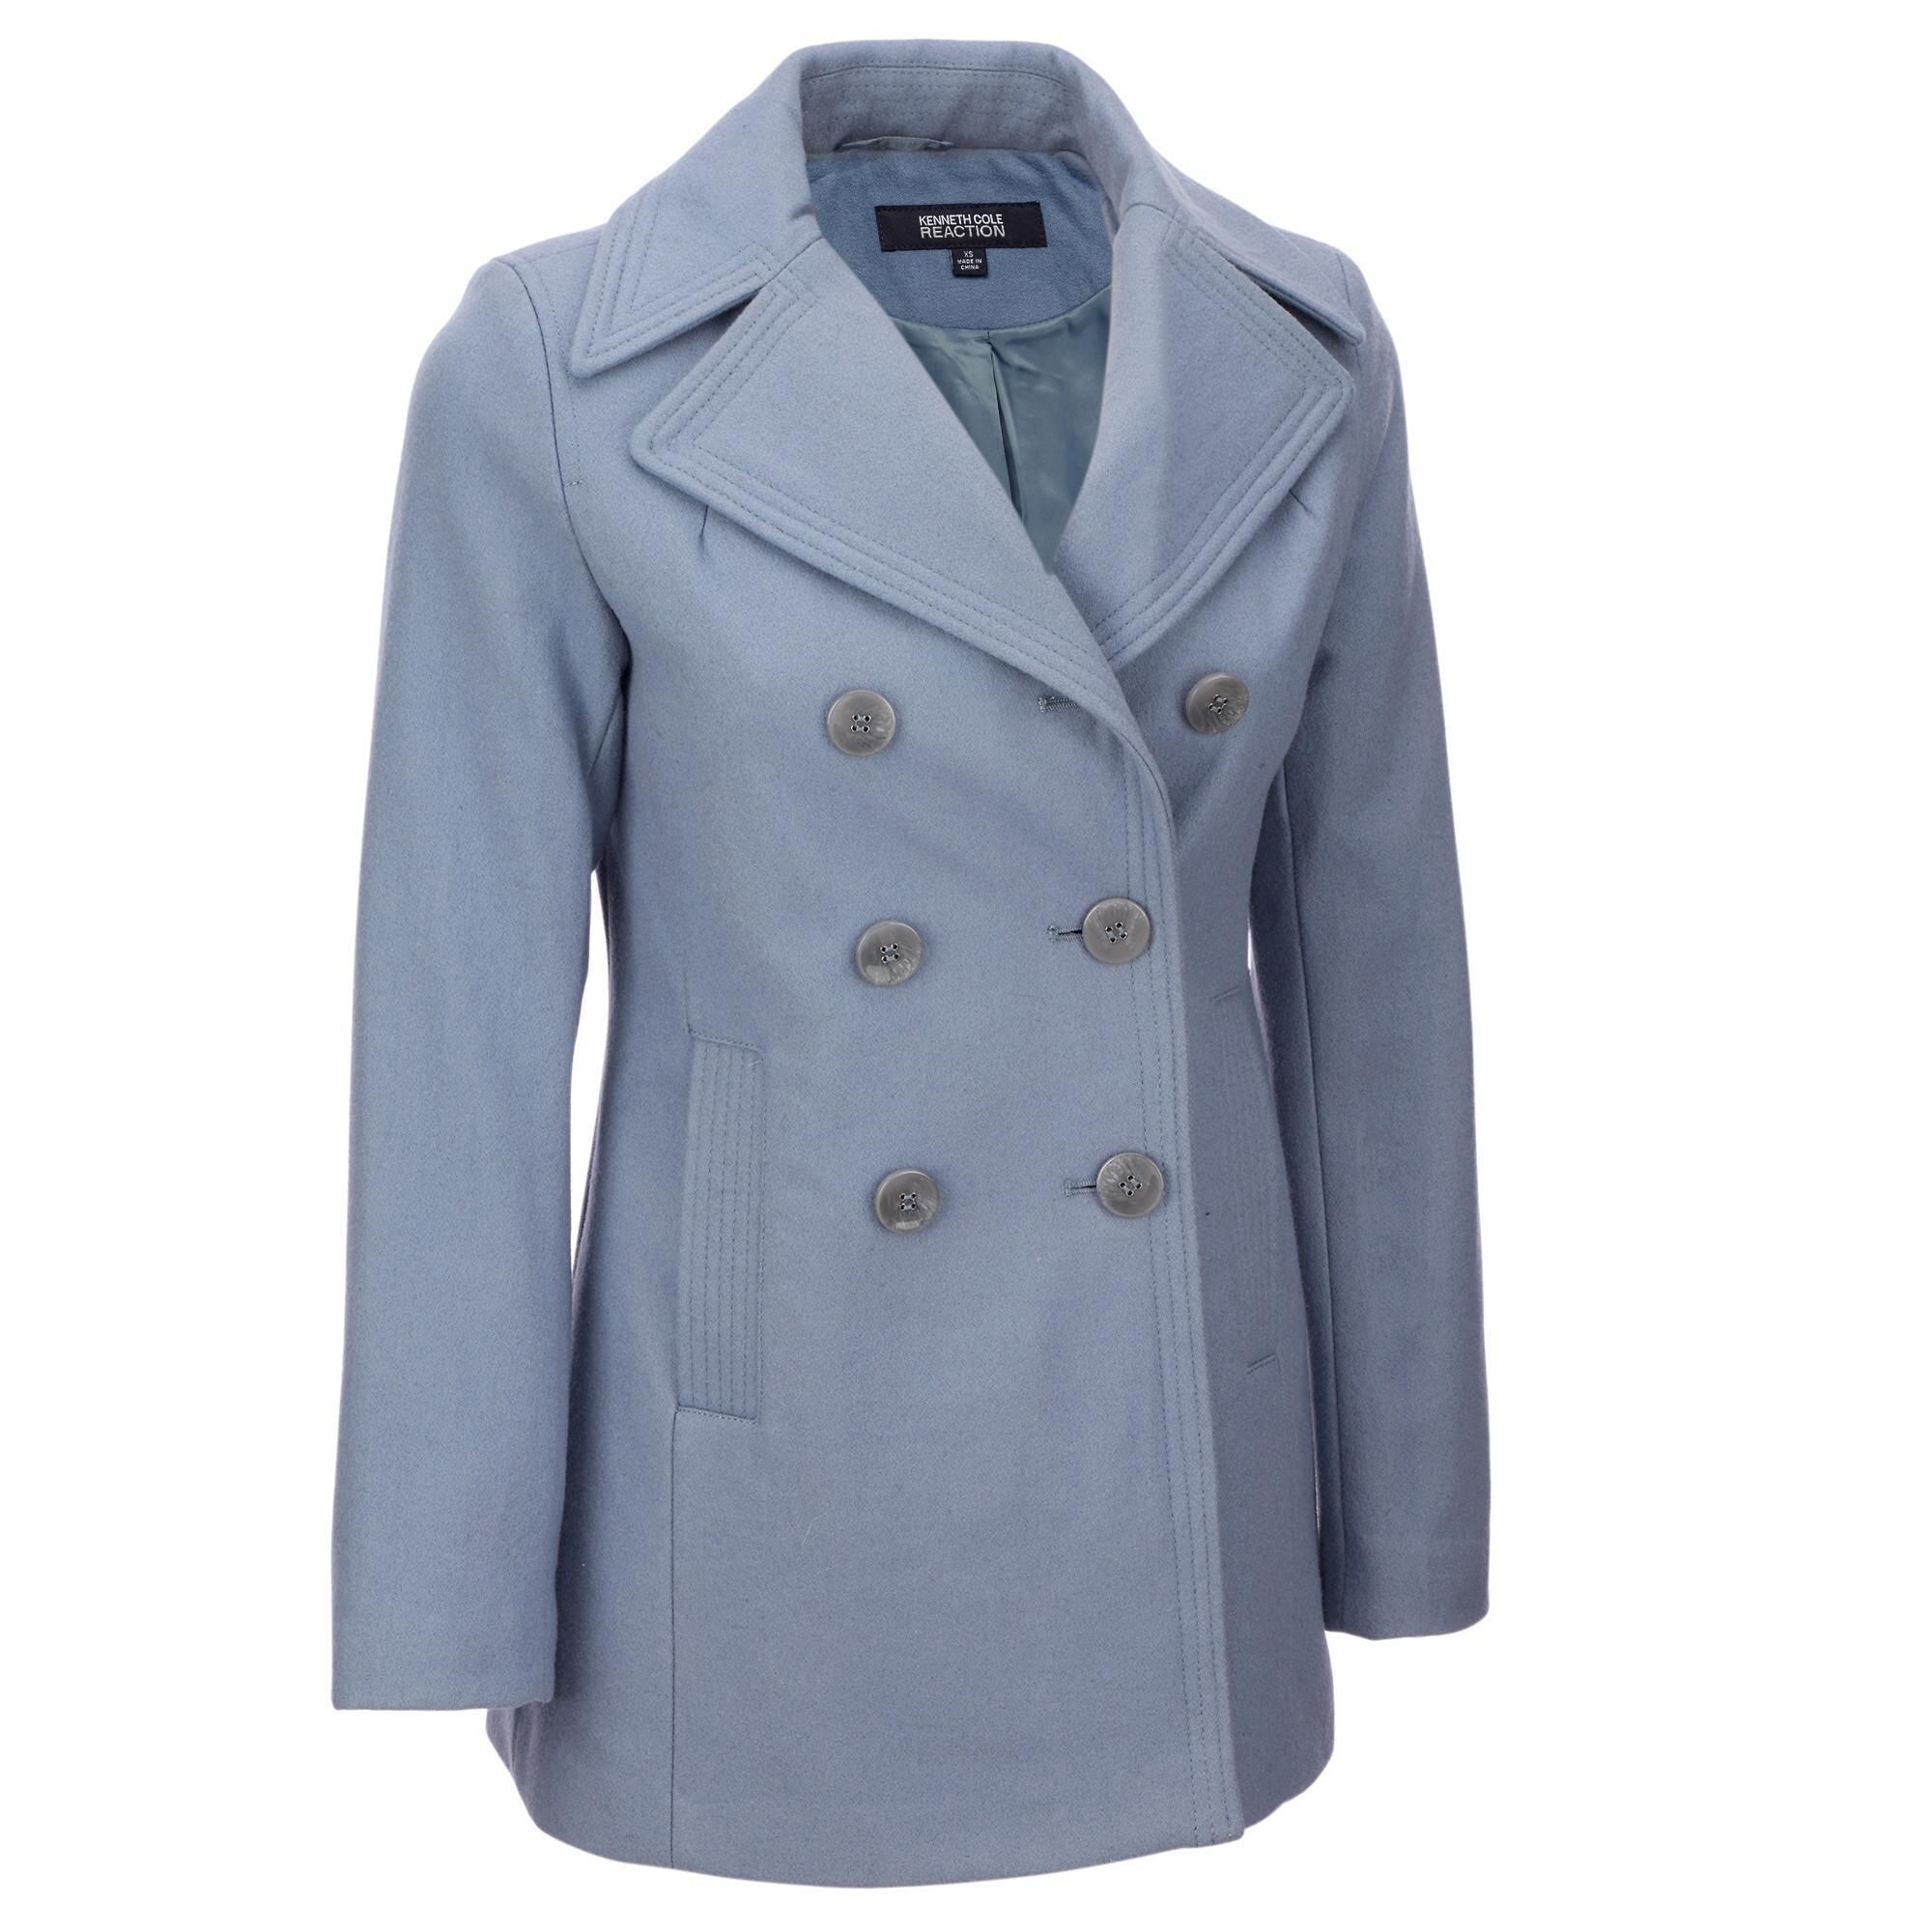 11898223d13 Wilsons Leather. Women s Blue Kenneth Cole Reaction 6 Button Double  Breasted Wool-blend Peacoat